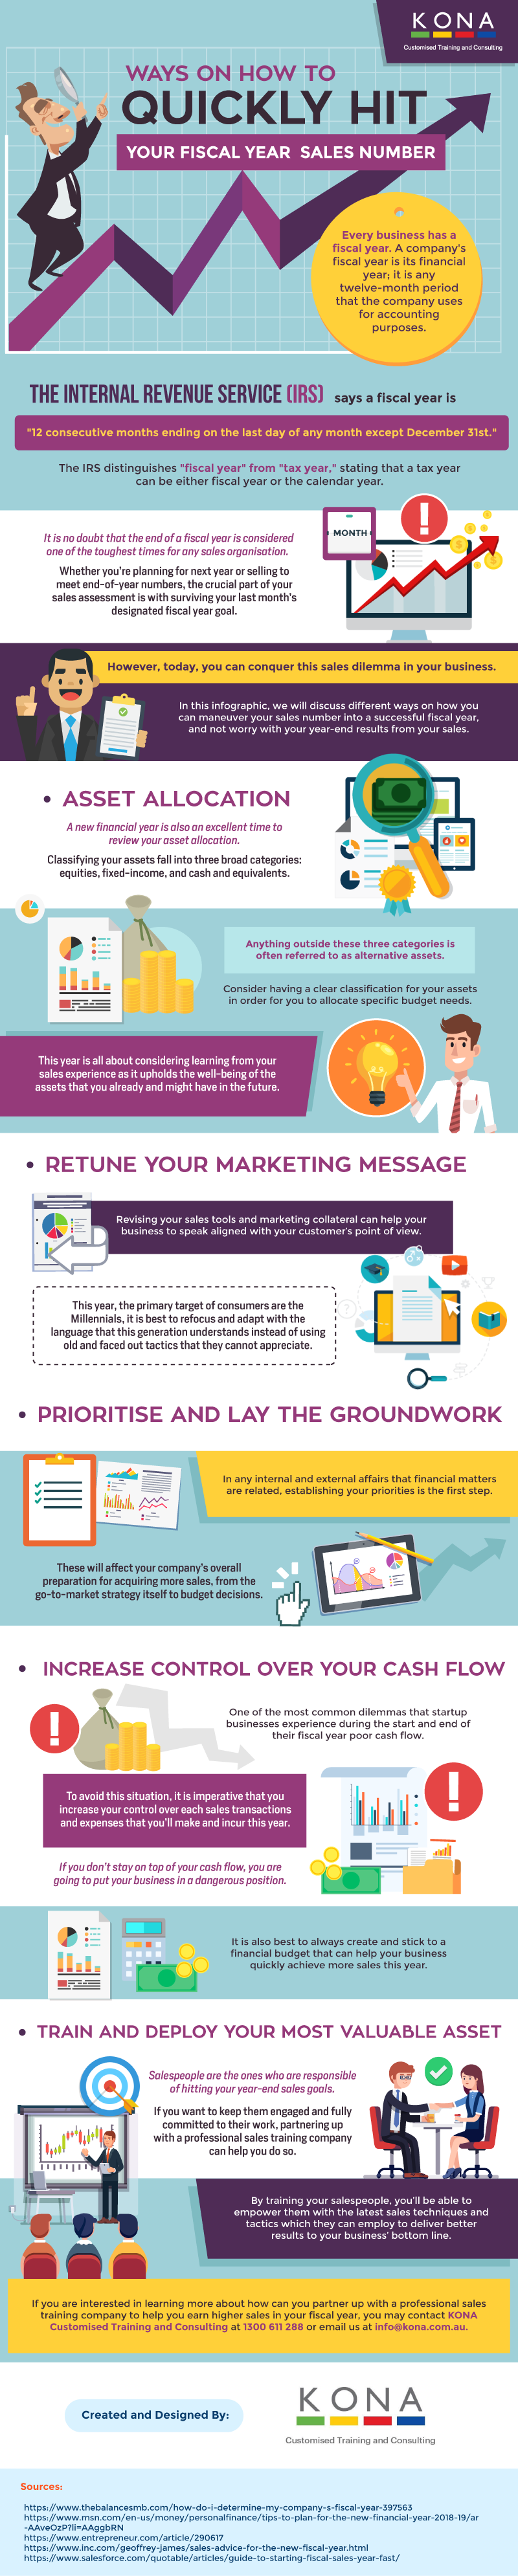 Ways on How to Quickly Hit Your Fiscal Year Sales Number - Infographic